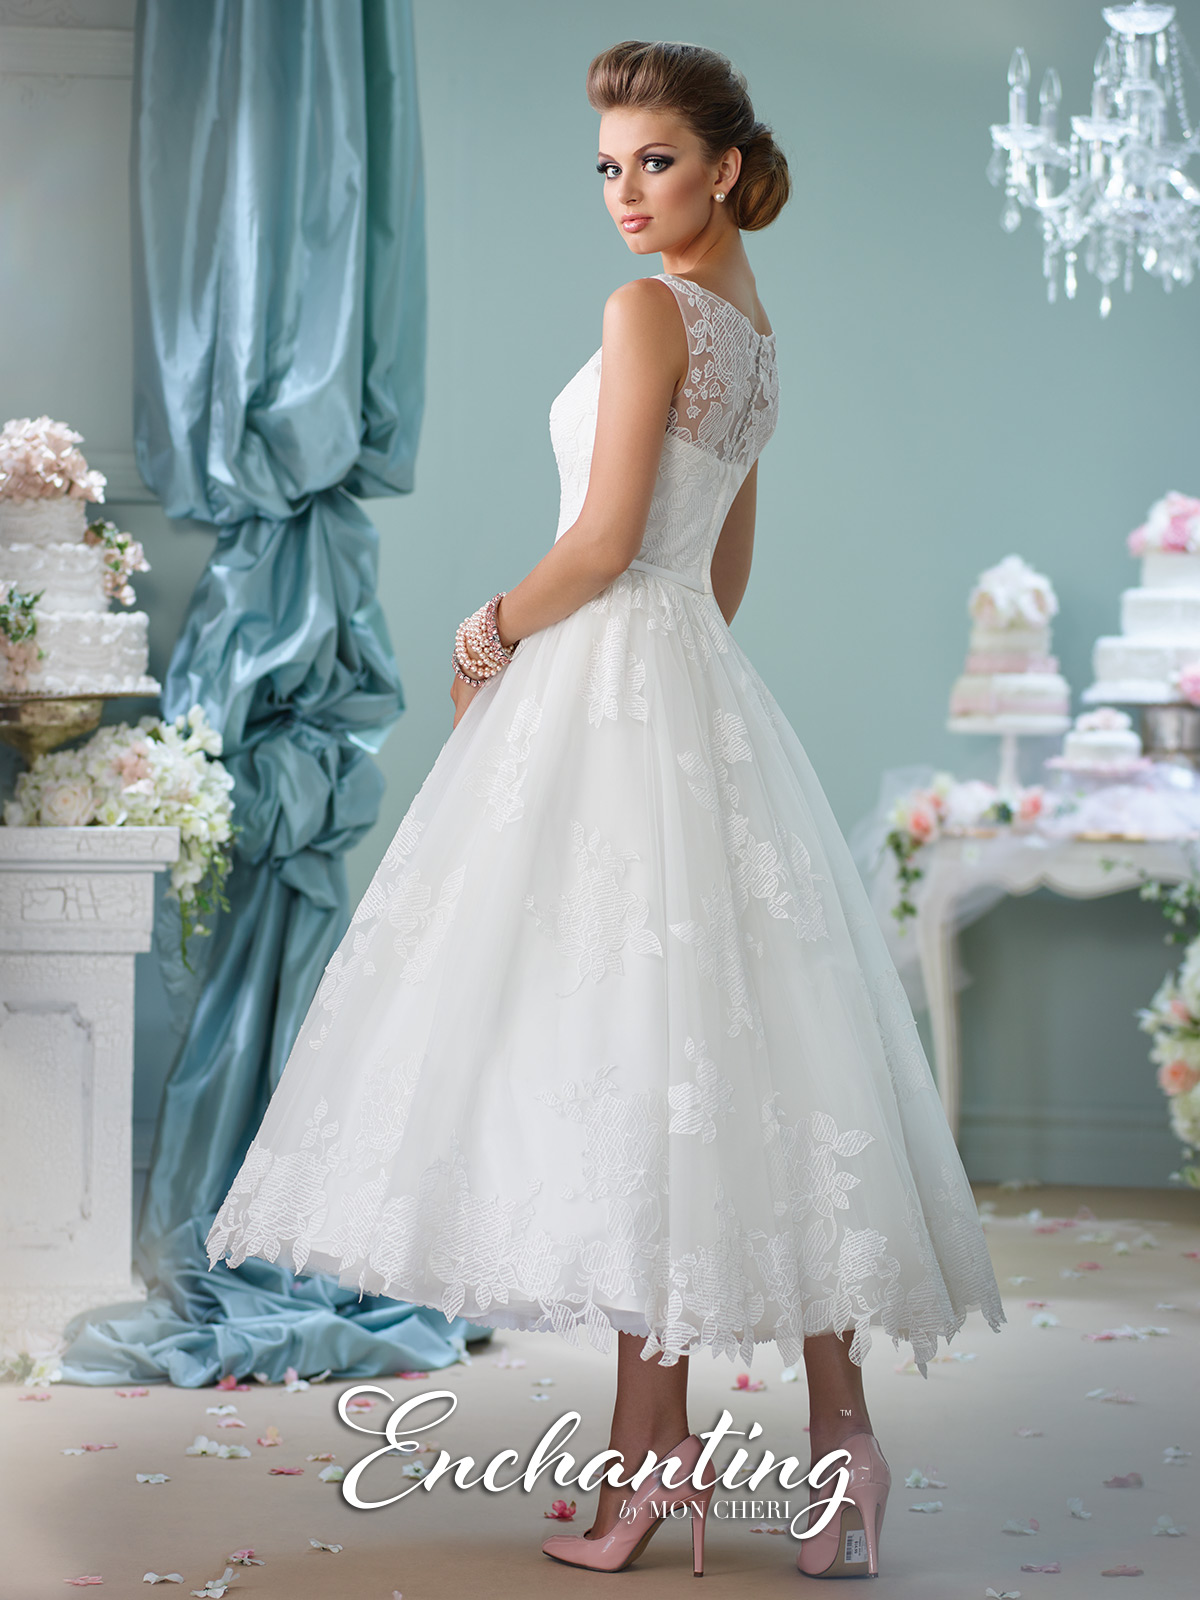 Inspirational Wedding Dresses with Short Front and Long Back – Wedding